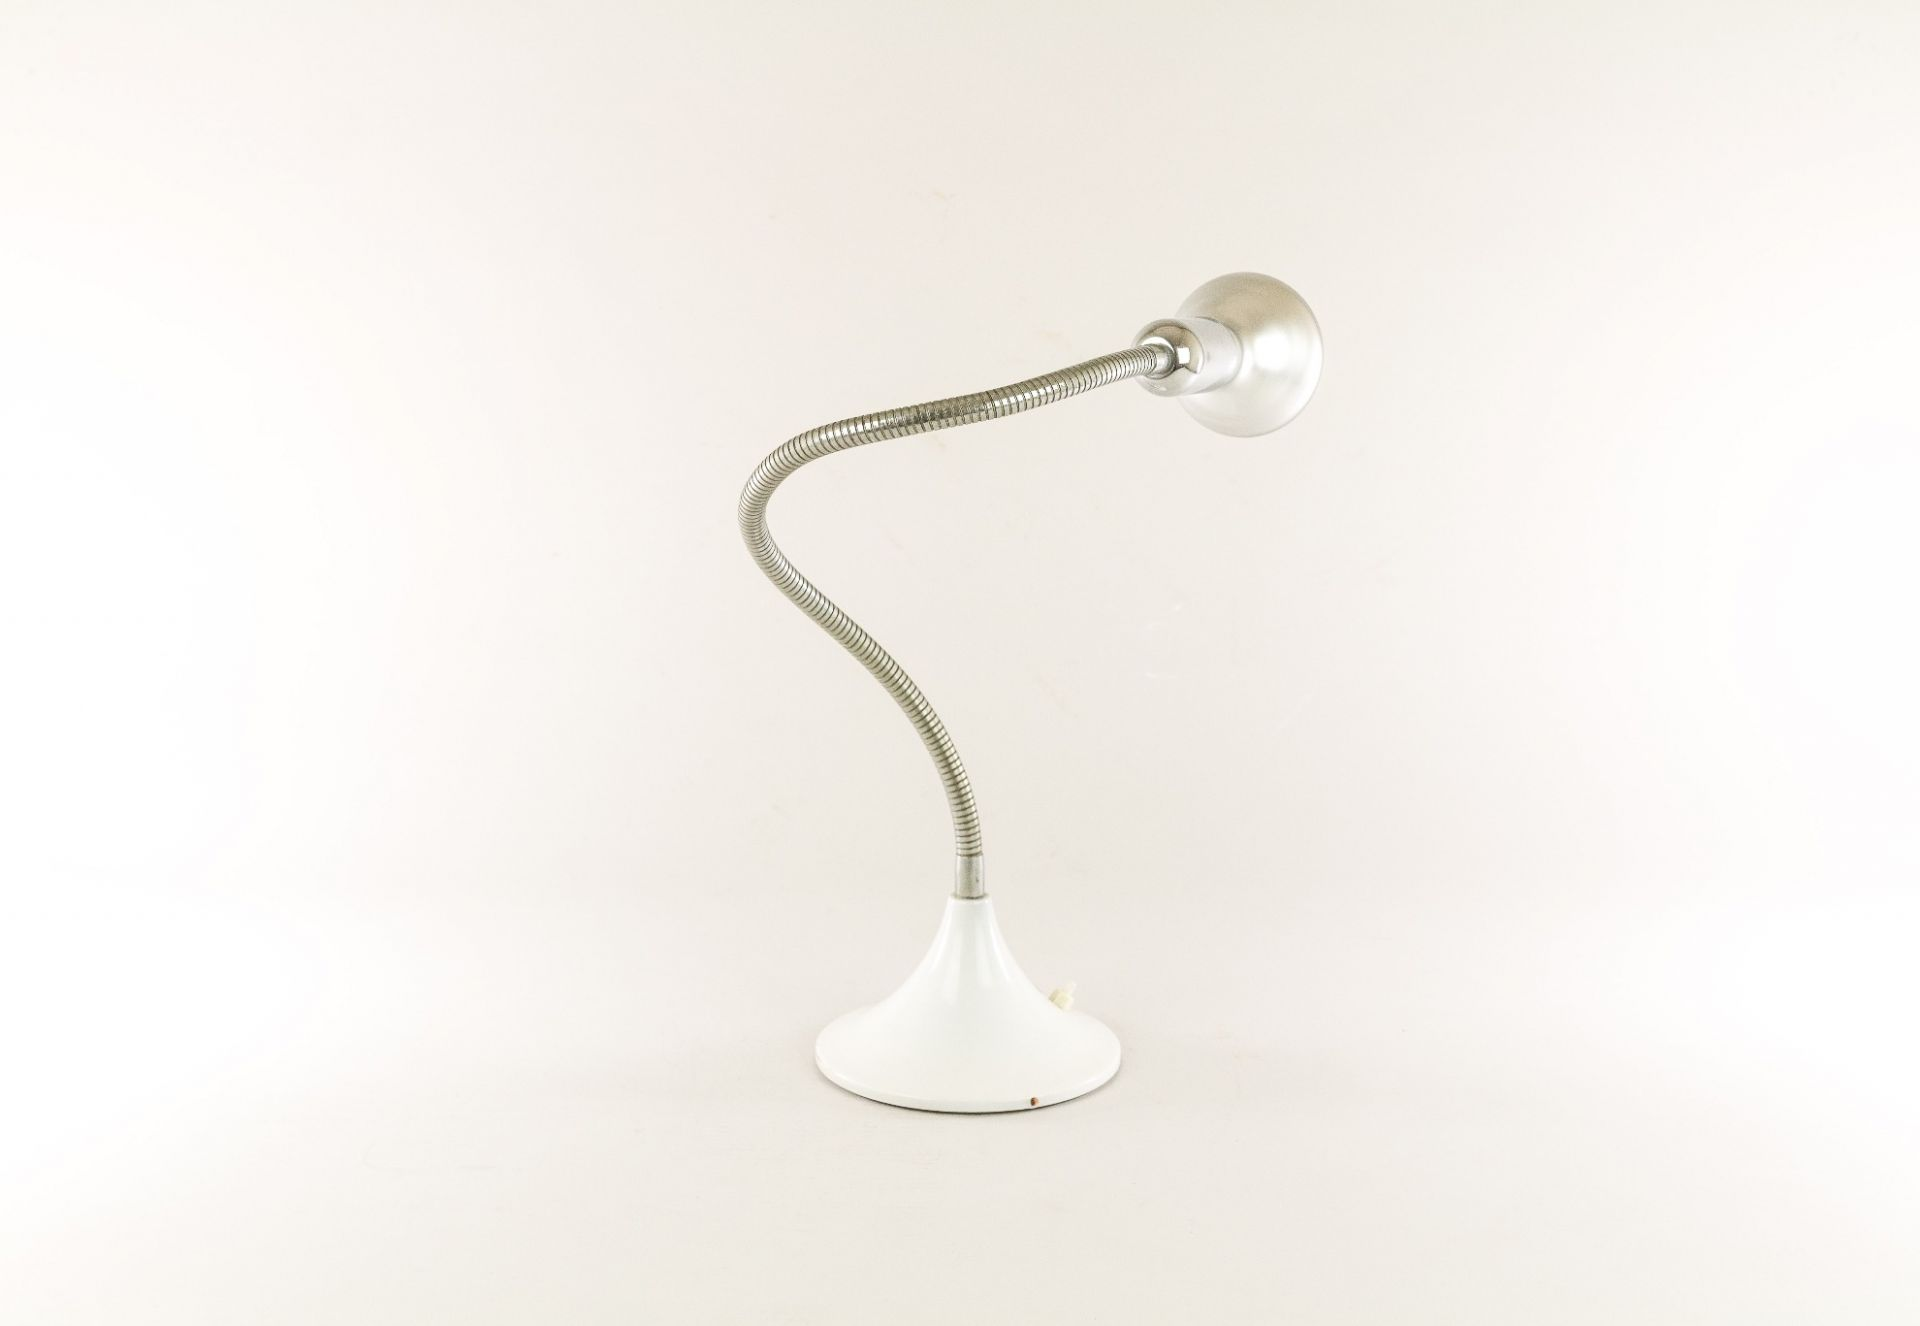 Adjustable wall or table lamp by Gepo, 1970s